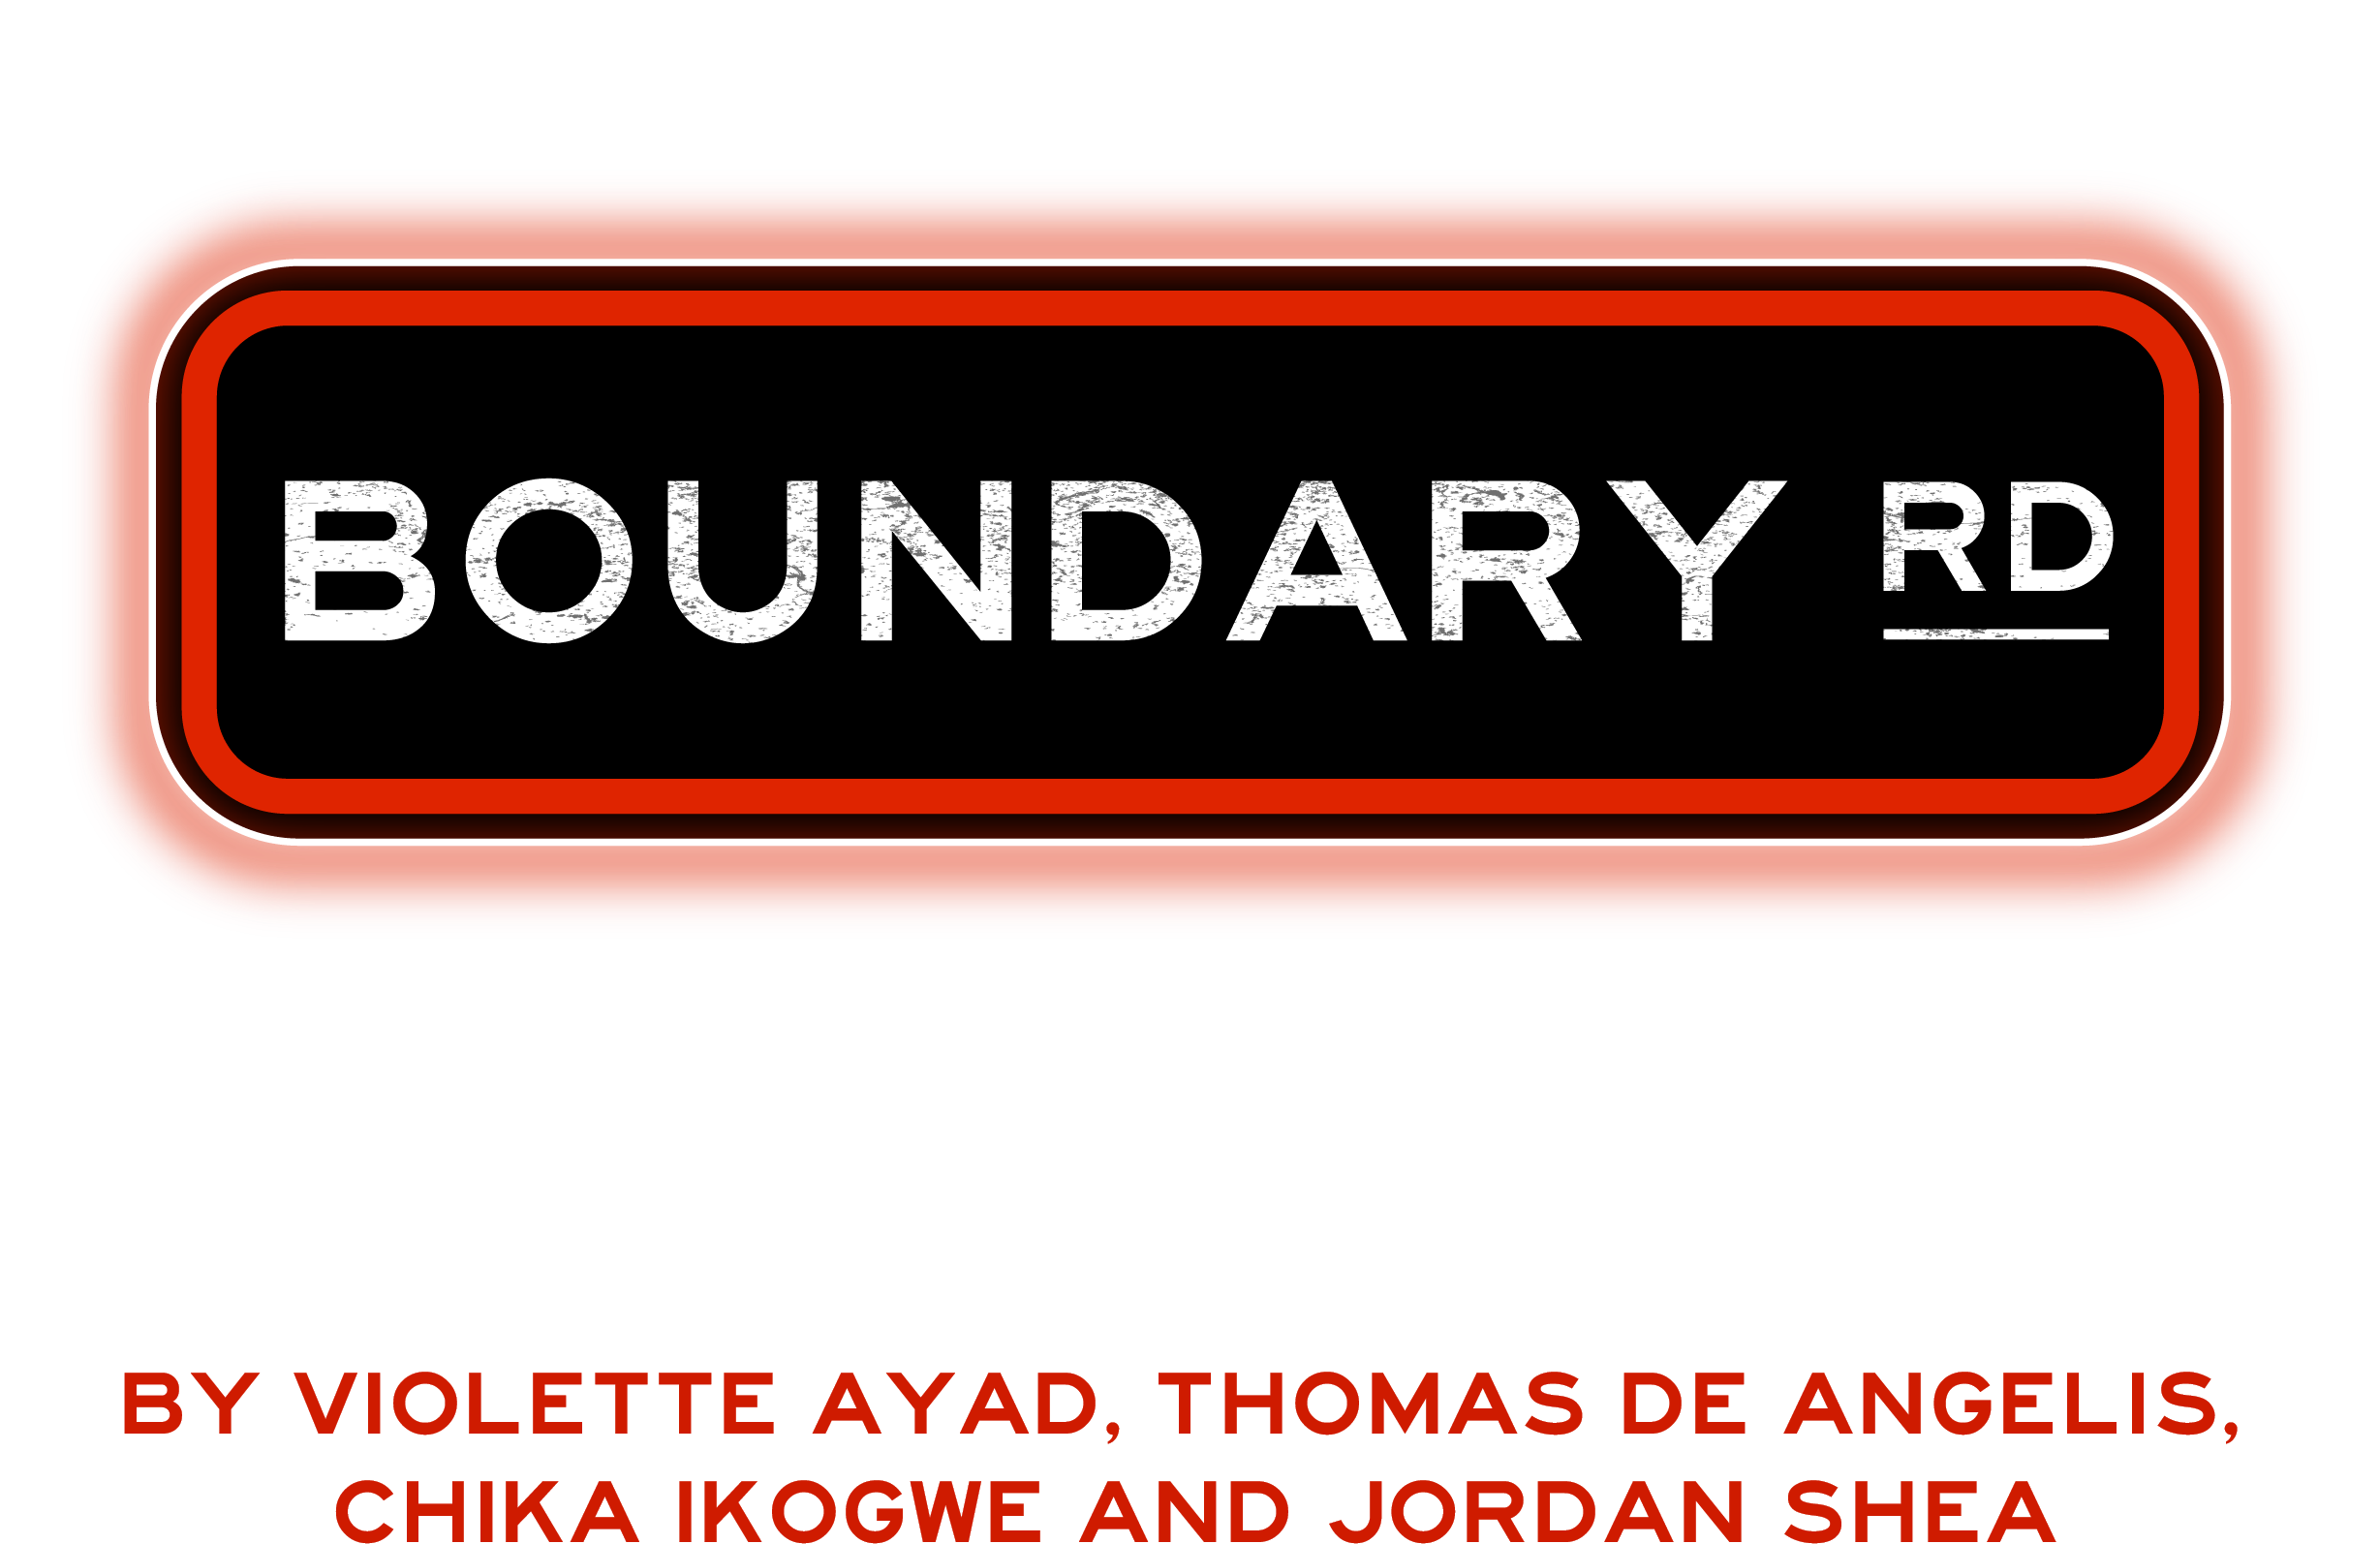 BOUNDARY RD EDIT.png